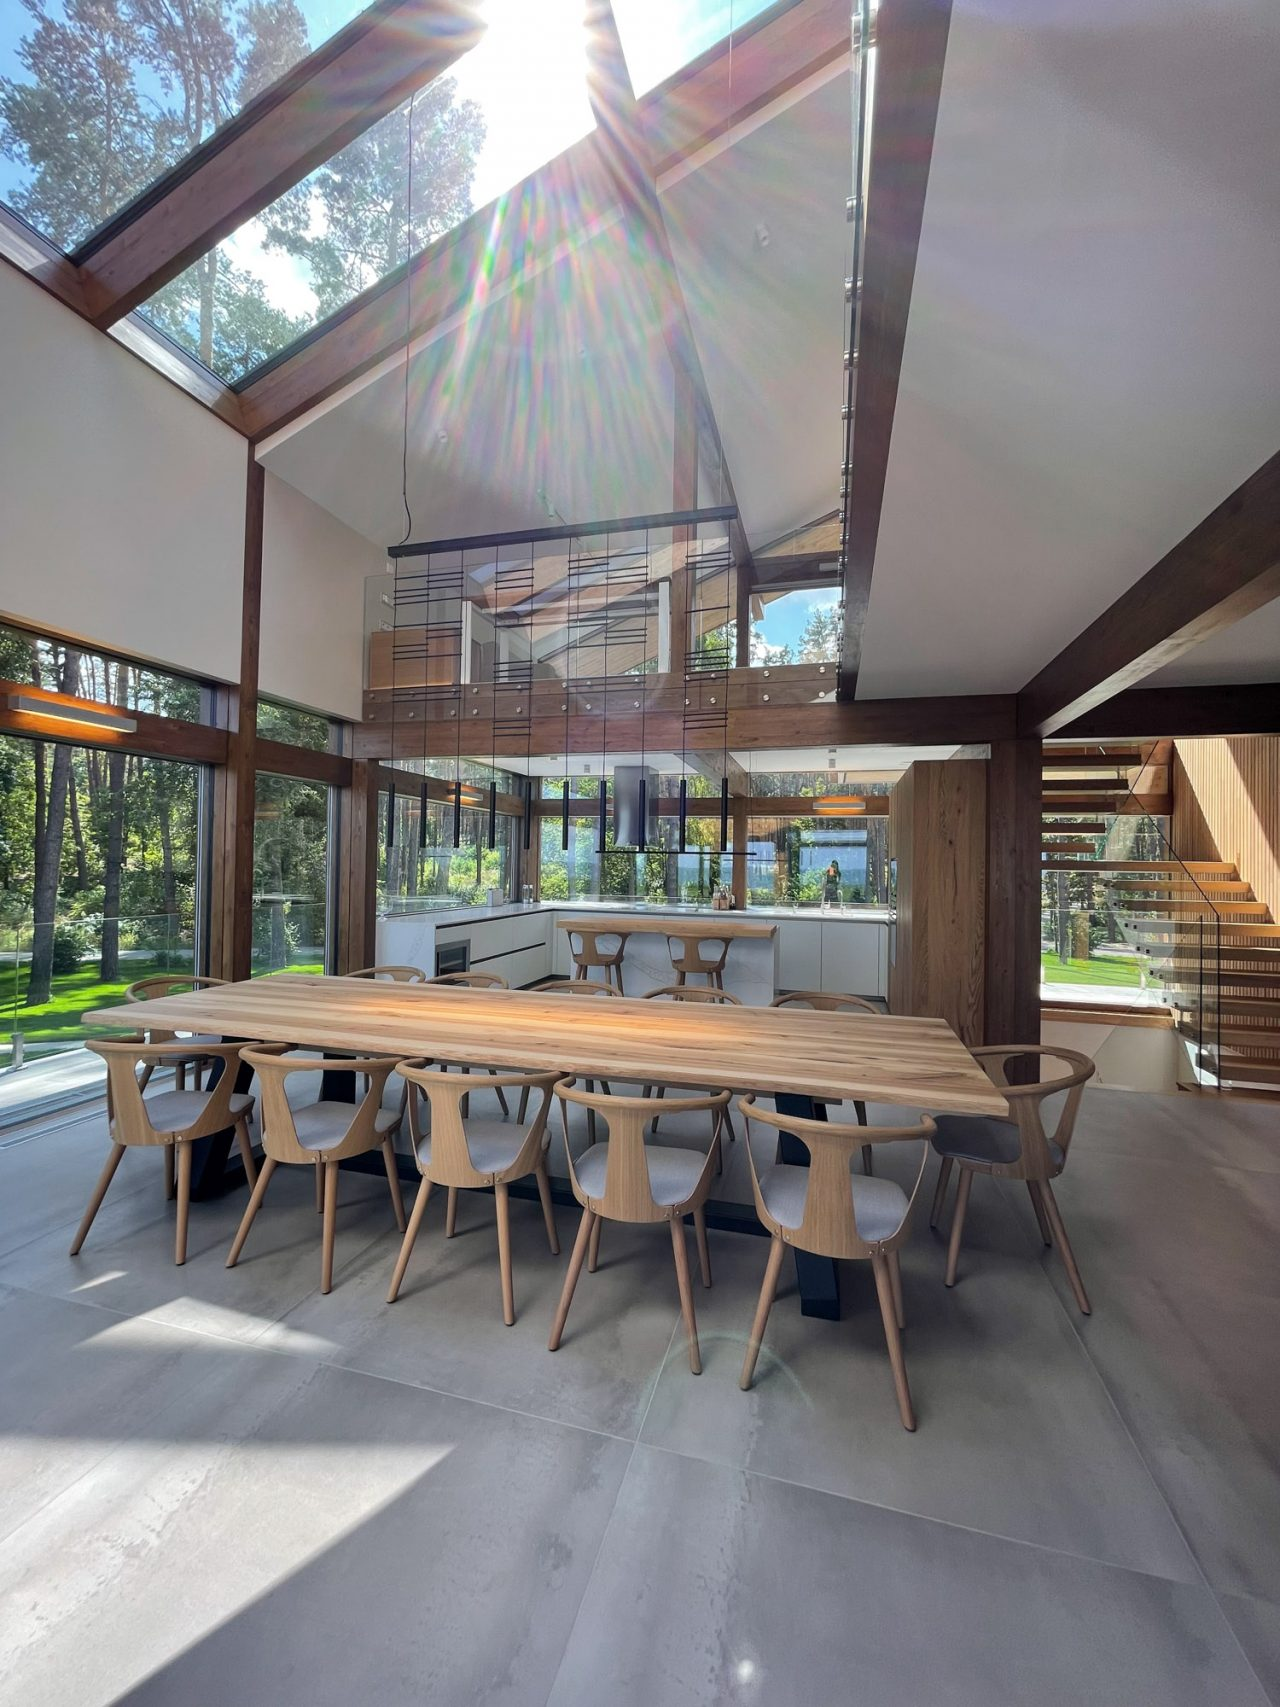 Hlass_house_KAGER - Hurii_24